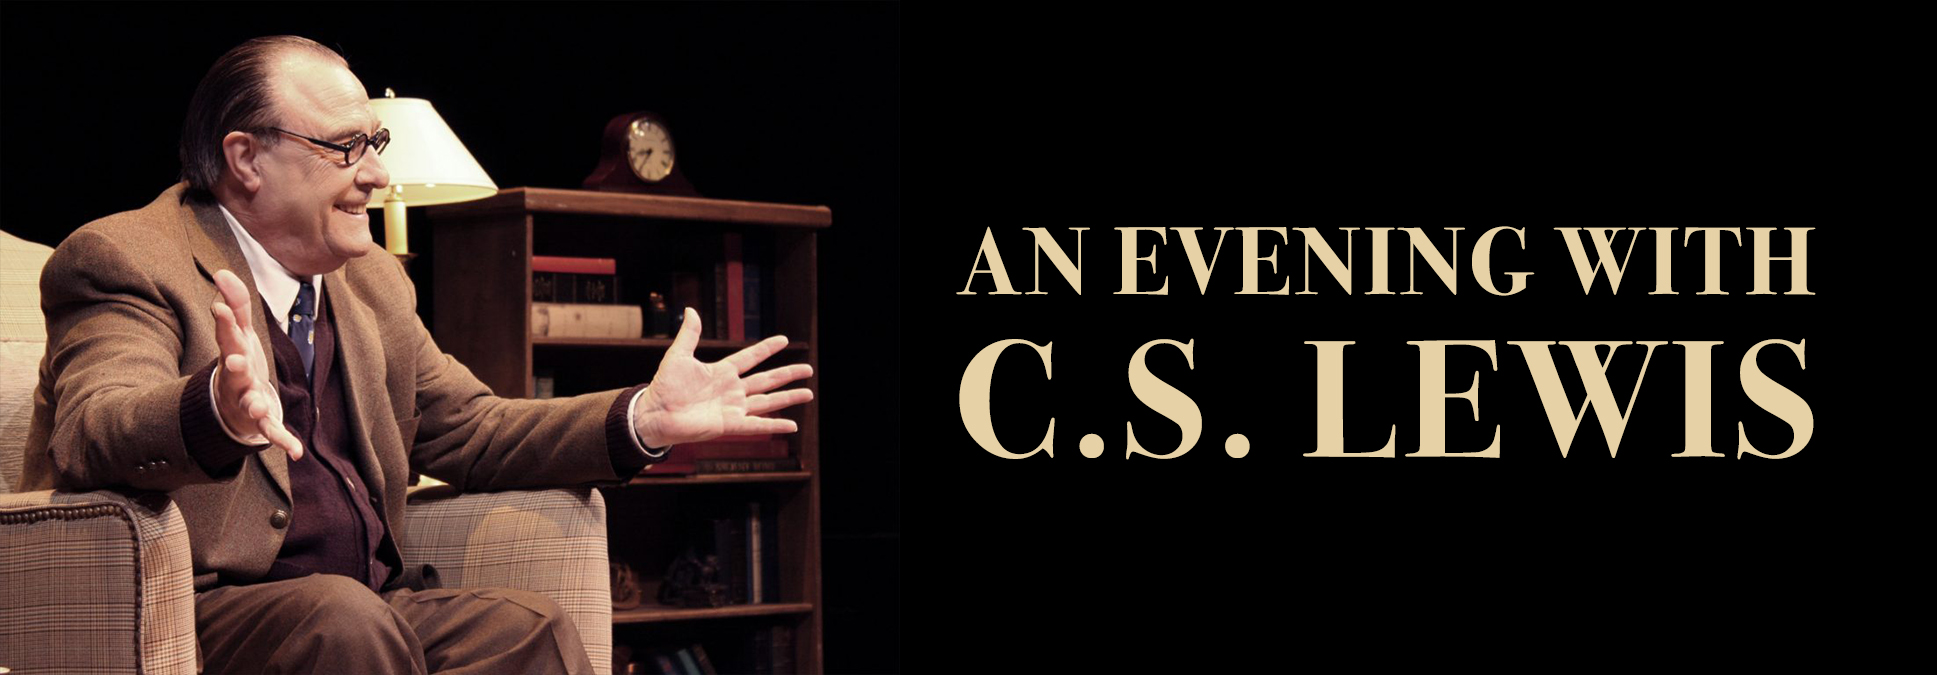 An evening with CS Lewis at the Marcus Center in Milwaukee